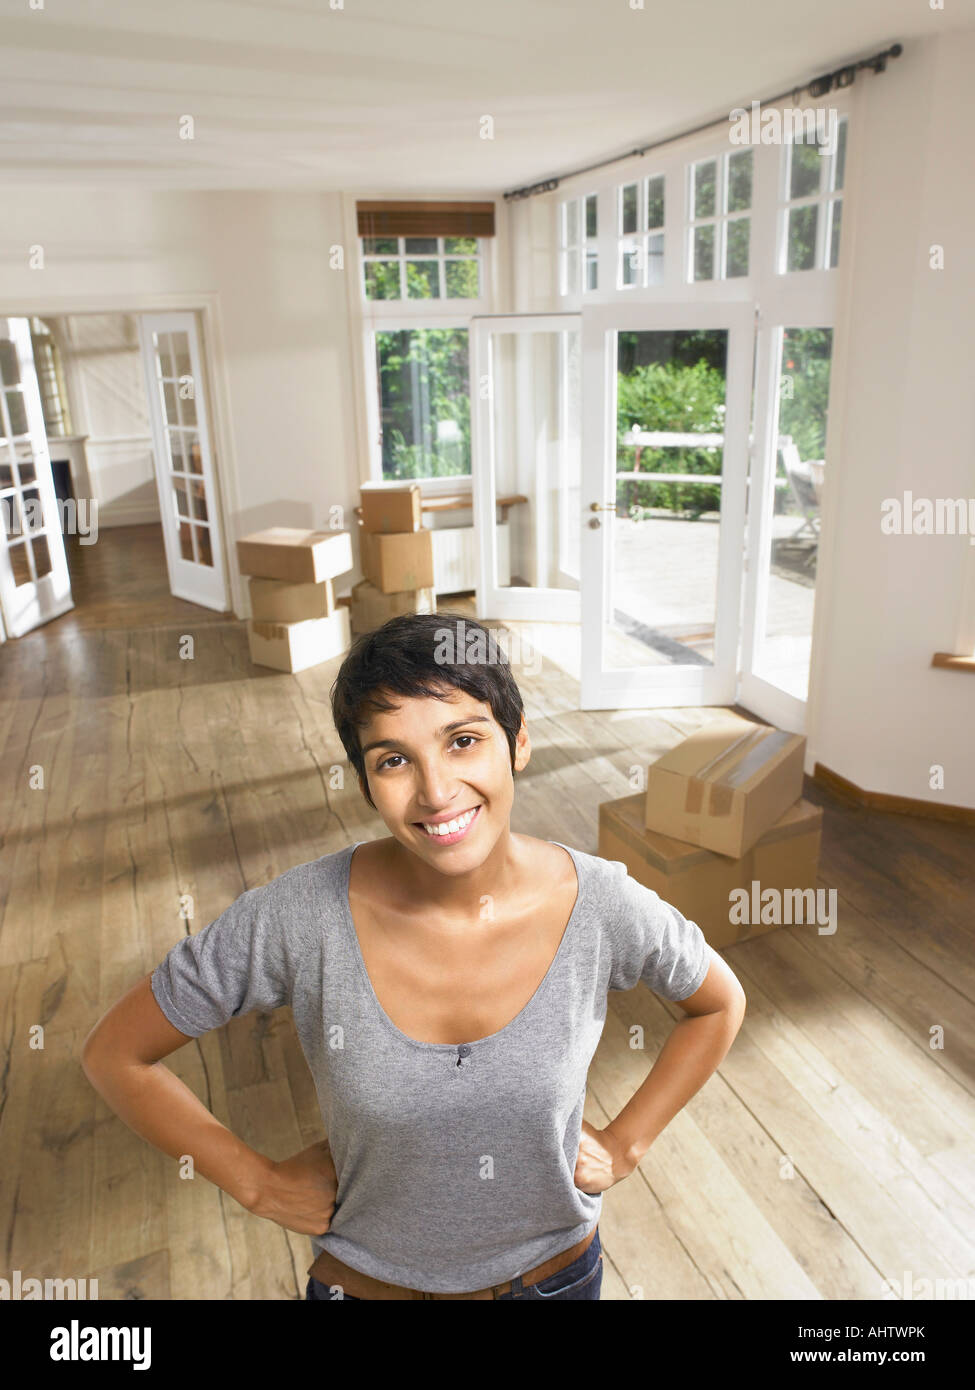 Portrait of a smiling woman moving in empty house  Boxes in